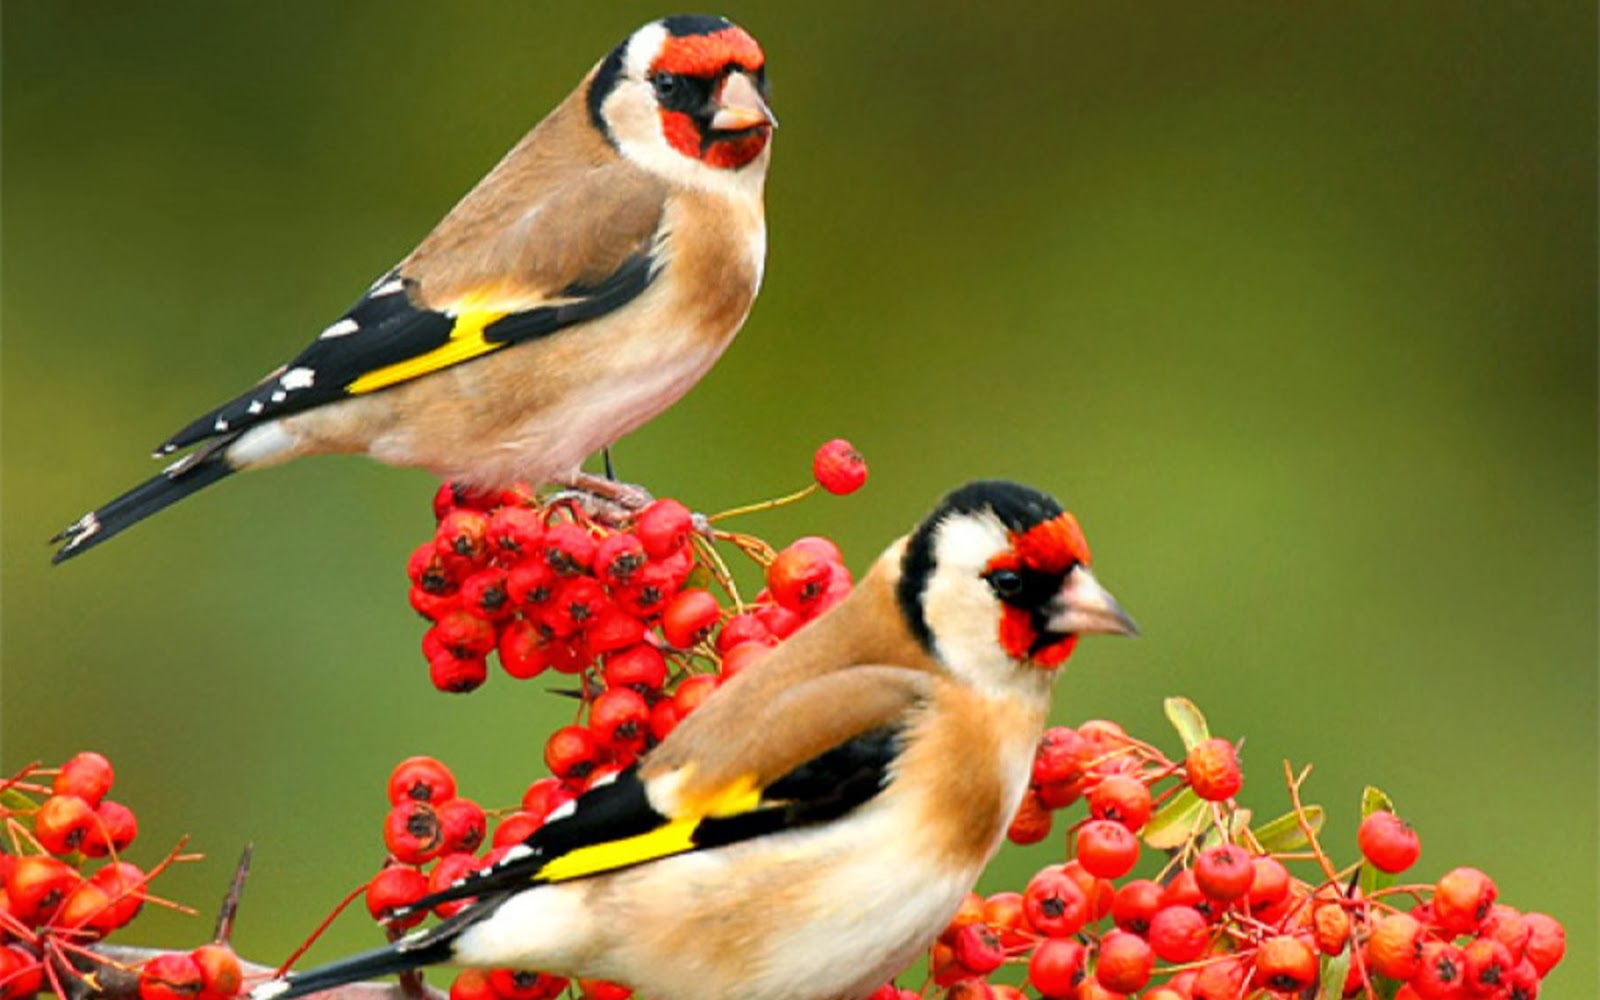 Beautiful period of sparrow nature birds hd wallpapers - Hd pics of nature with birds ...